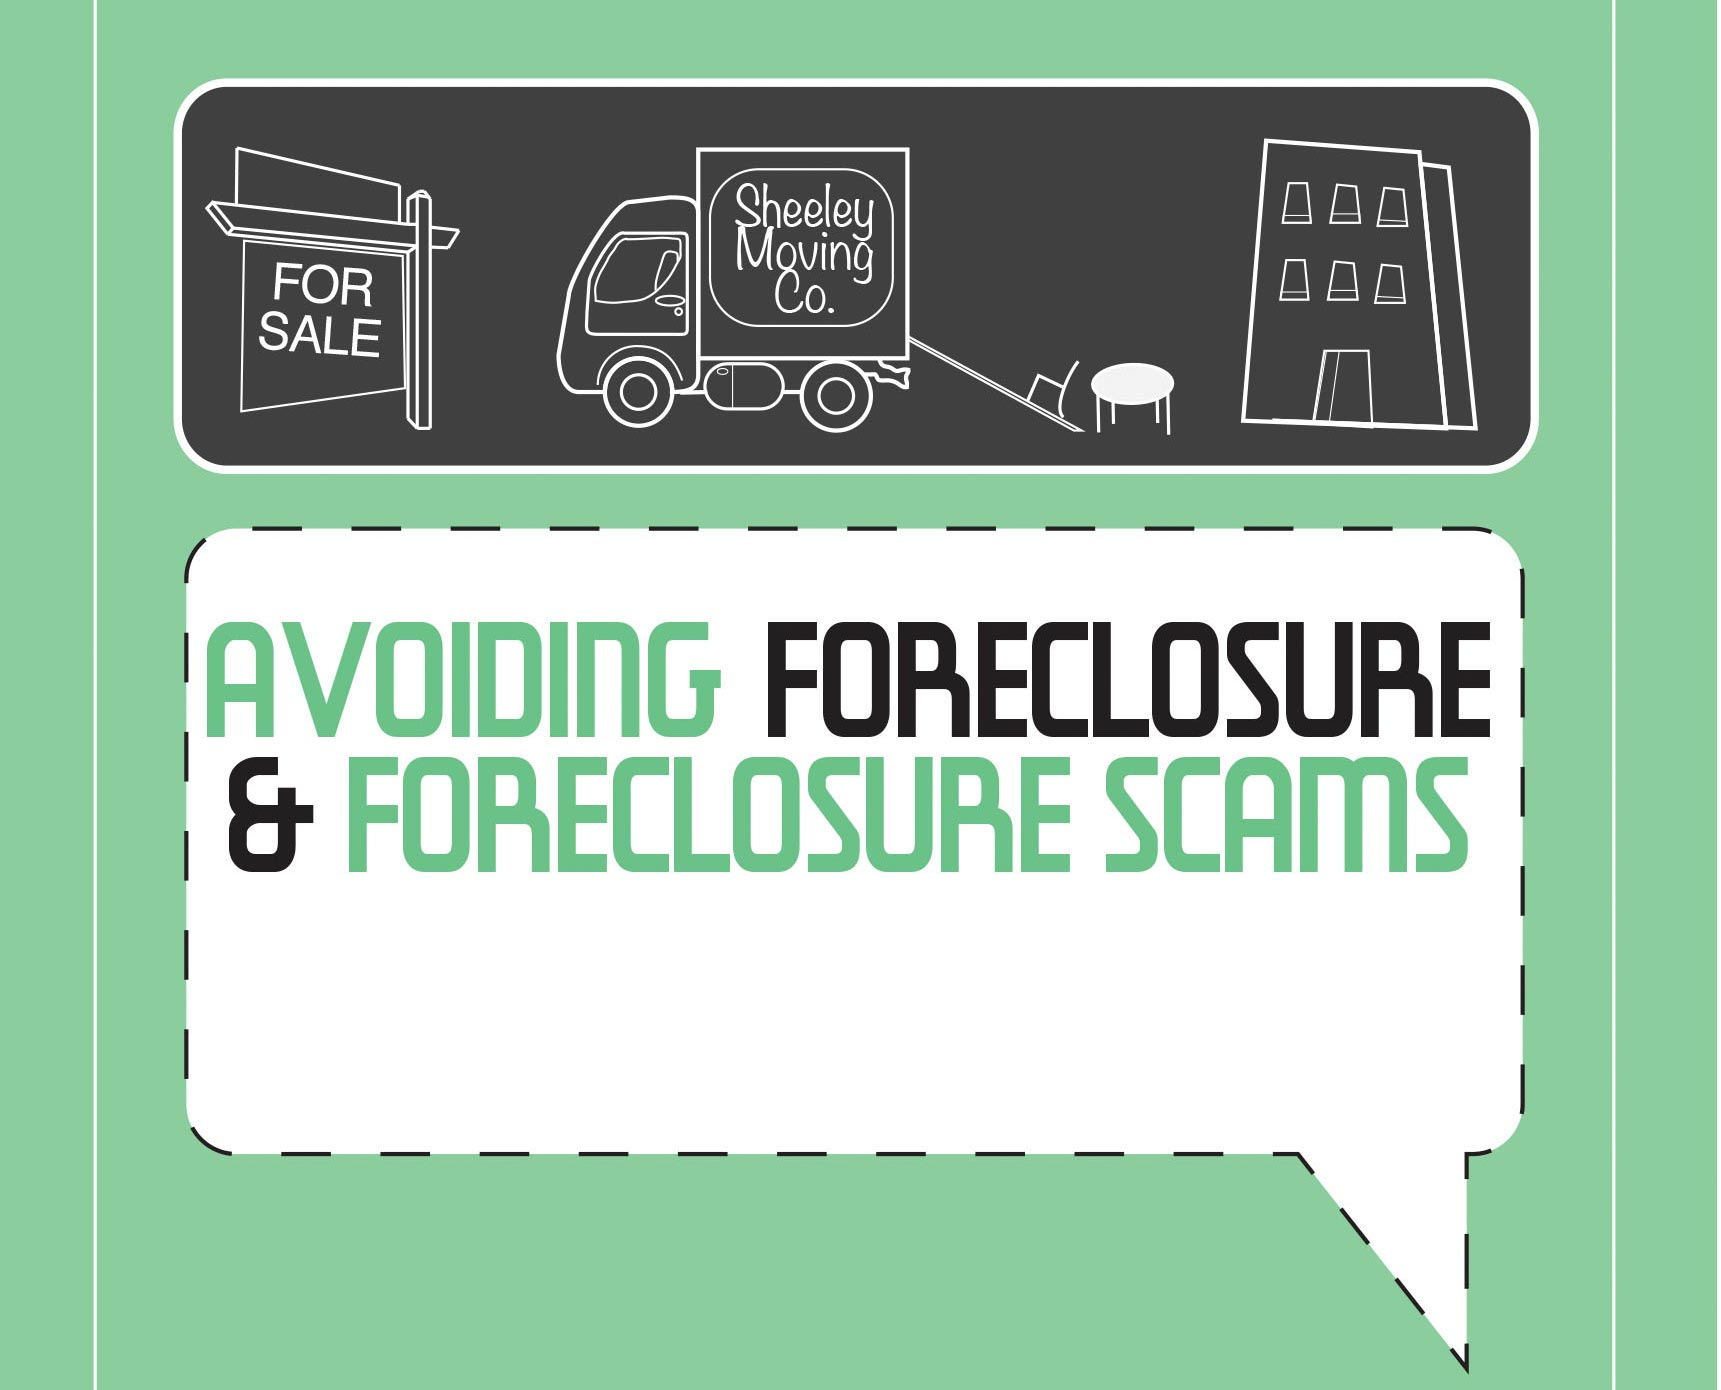 Avoiding-Foreclosure-and-Foreclosure-Scams-Booklet-1.jpg